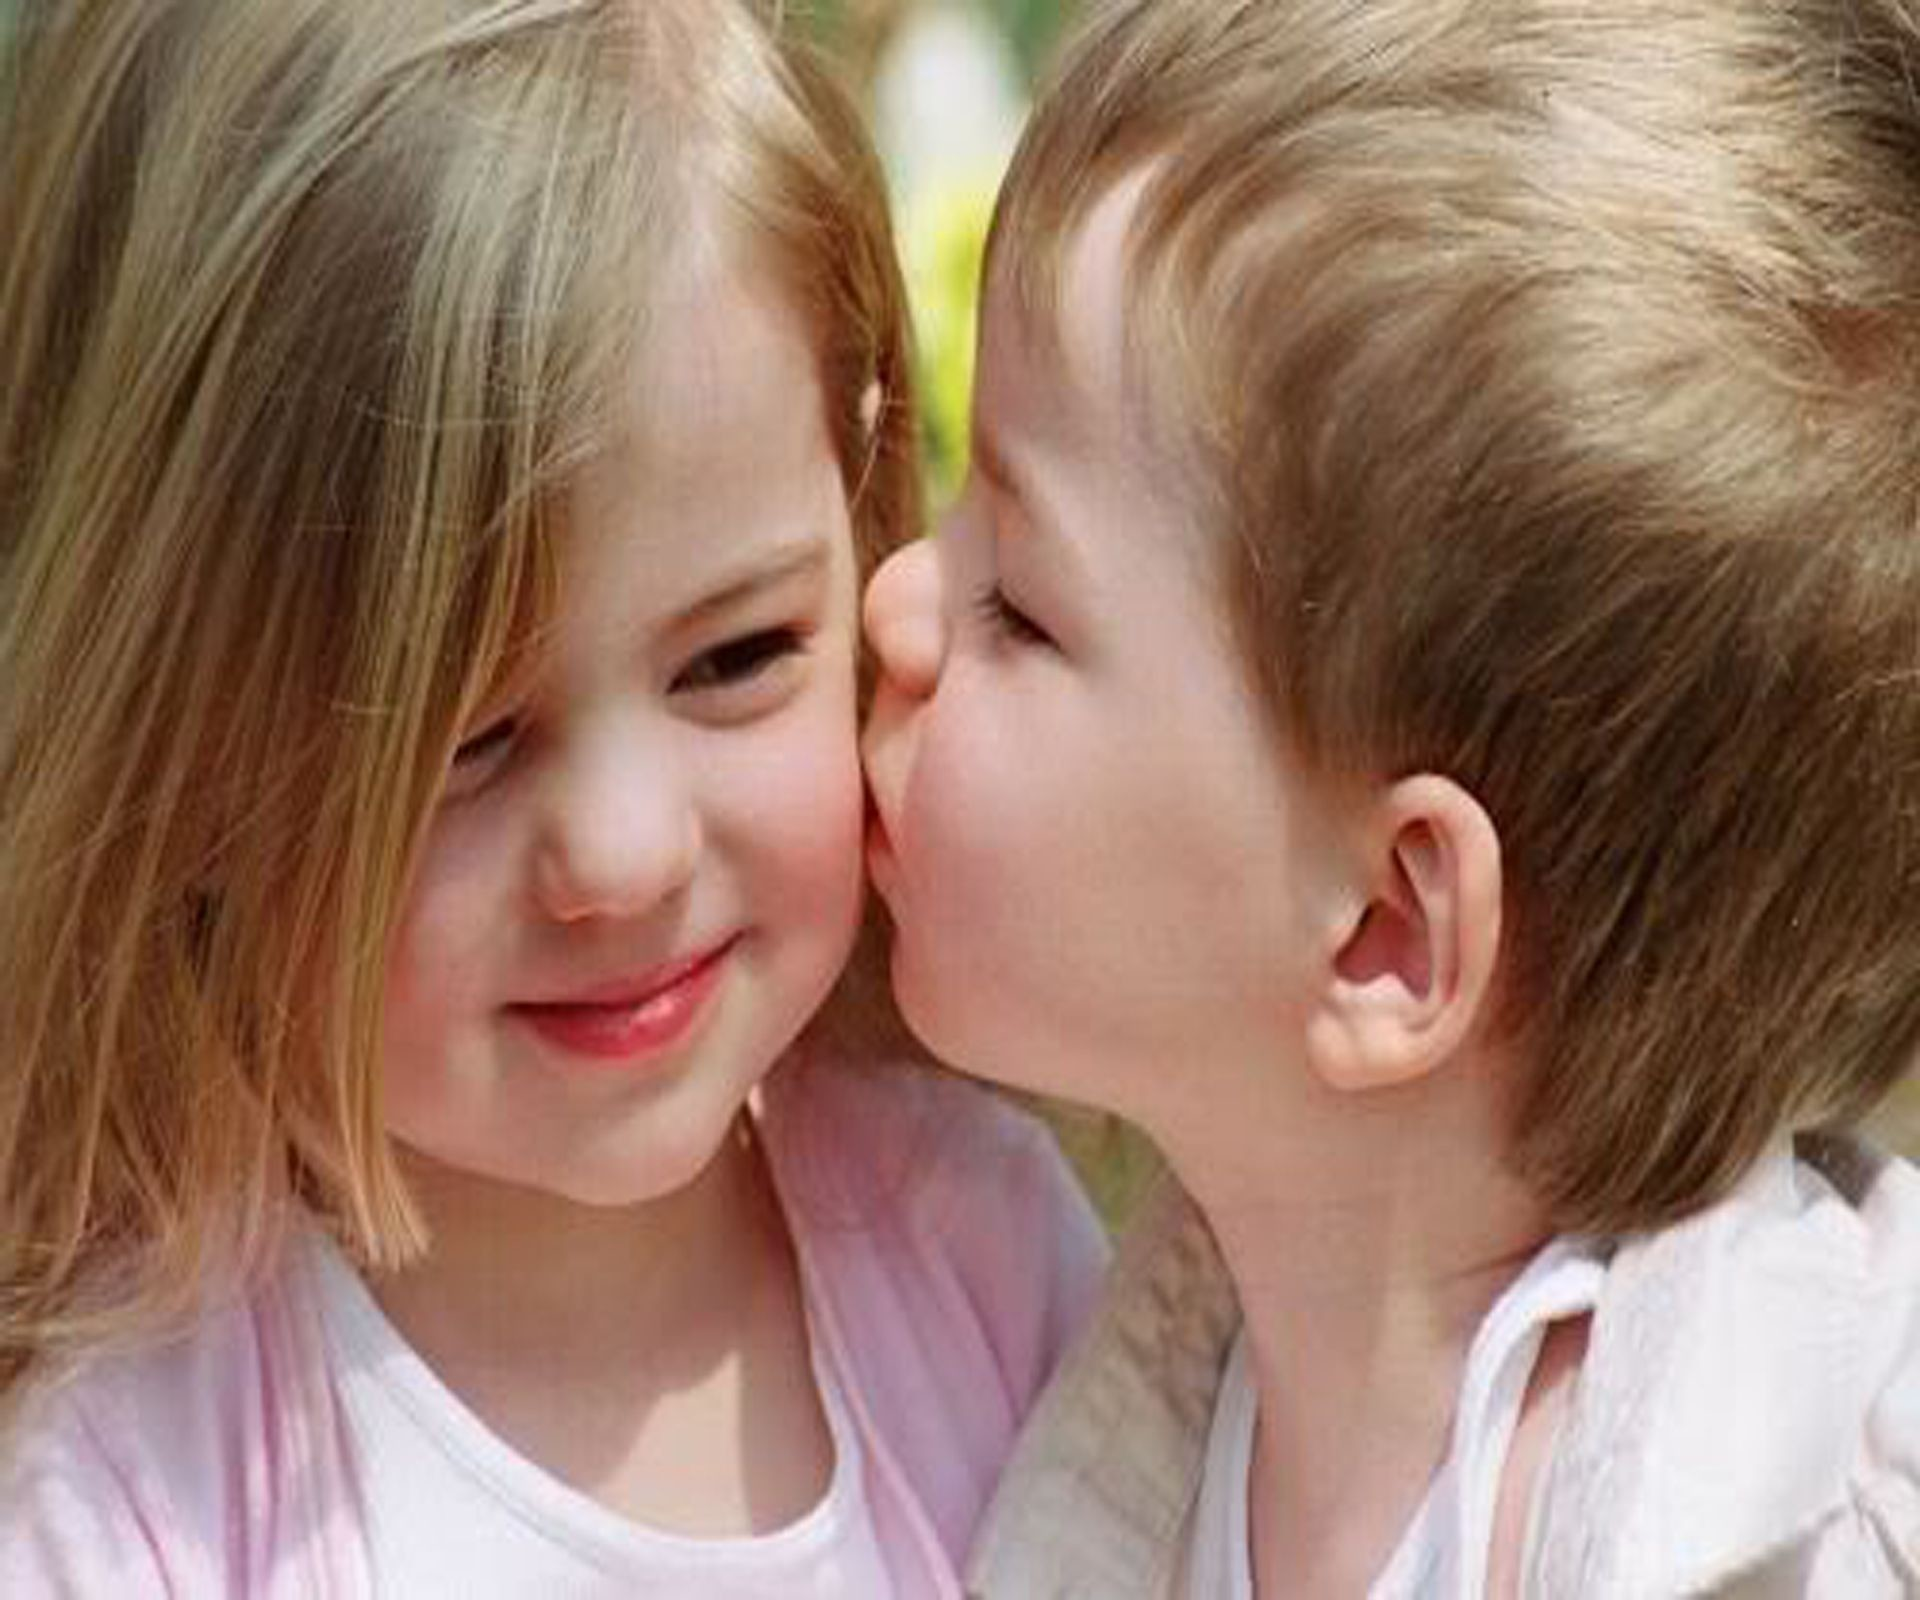 Amazing Wallpaper Mobile Kiss - 894377-kissing-wallpapers-hd-2018-1920x1600-mobile  Trends_43999.jpg